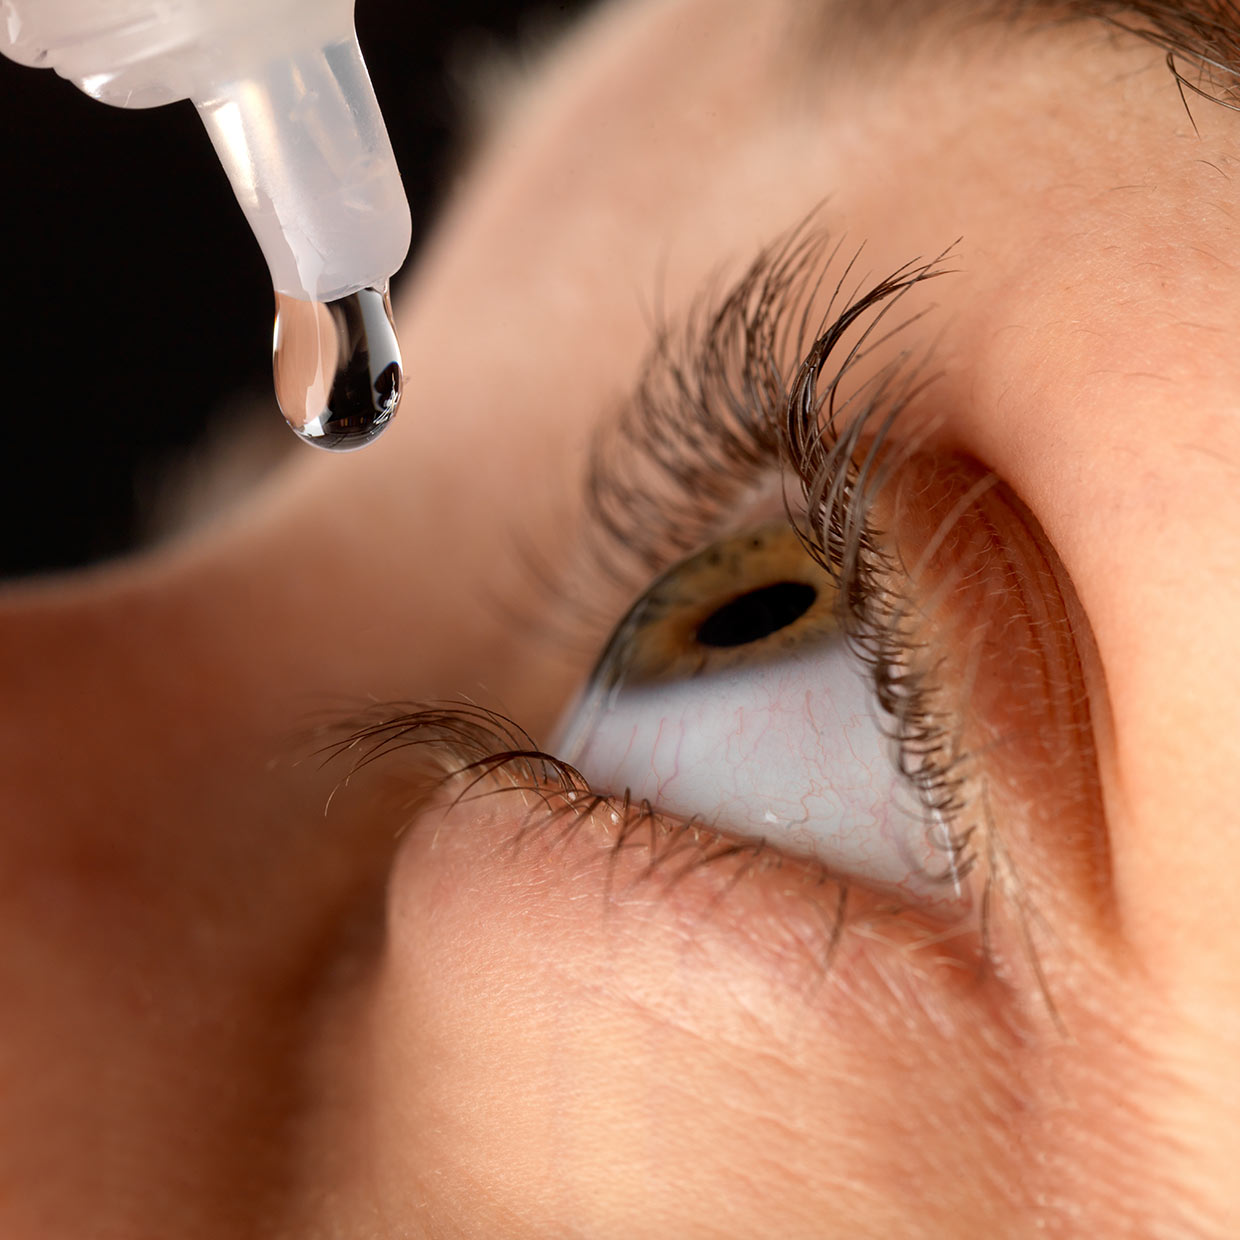 Eye infections – make your optometrist your first port of call